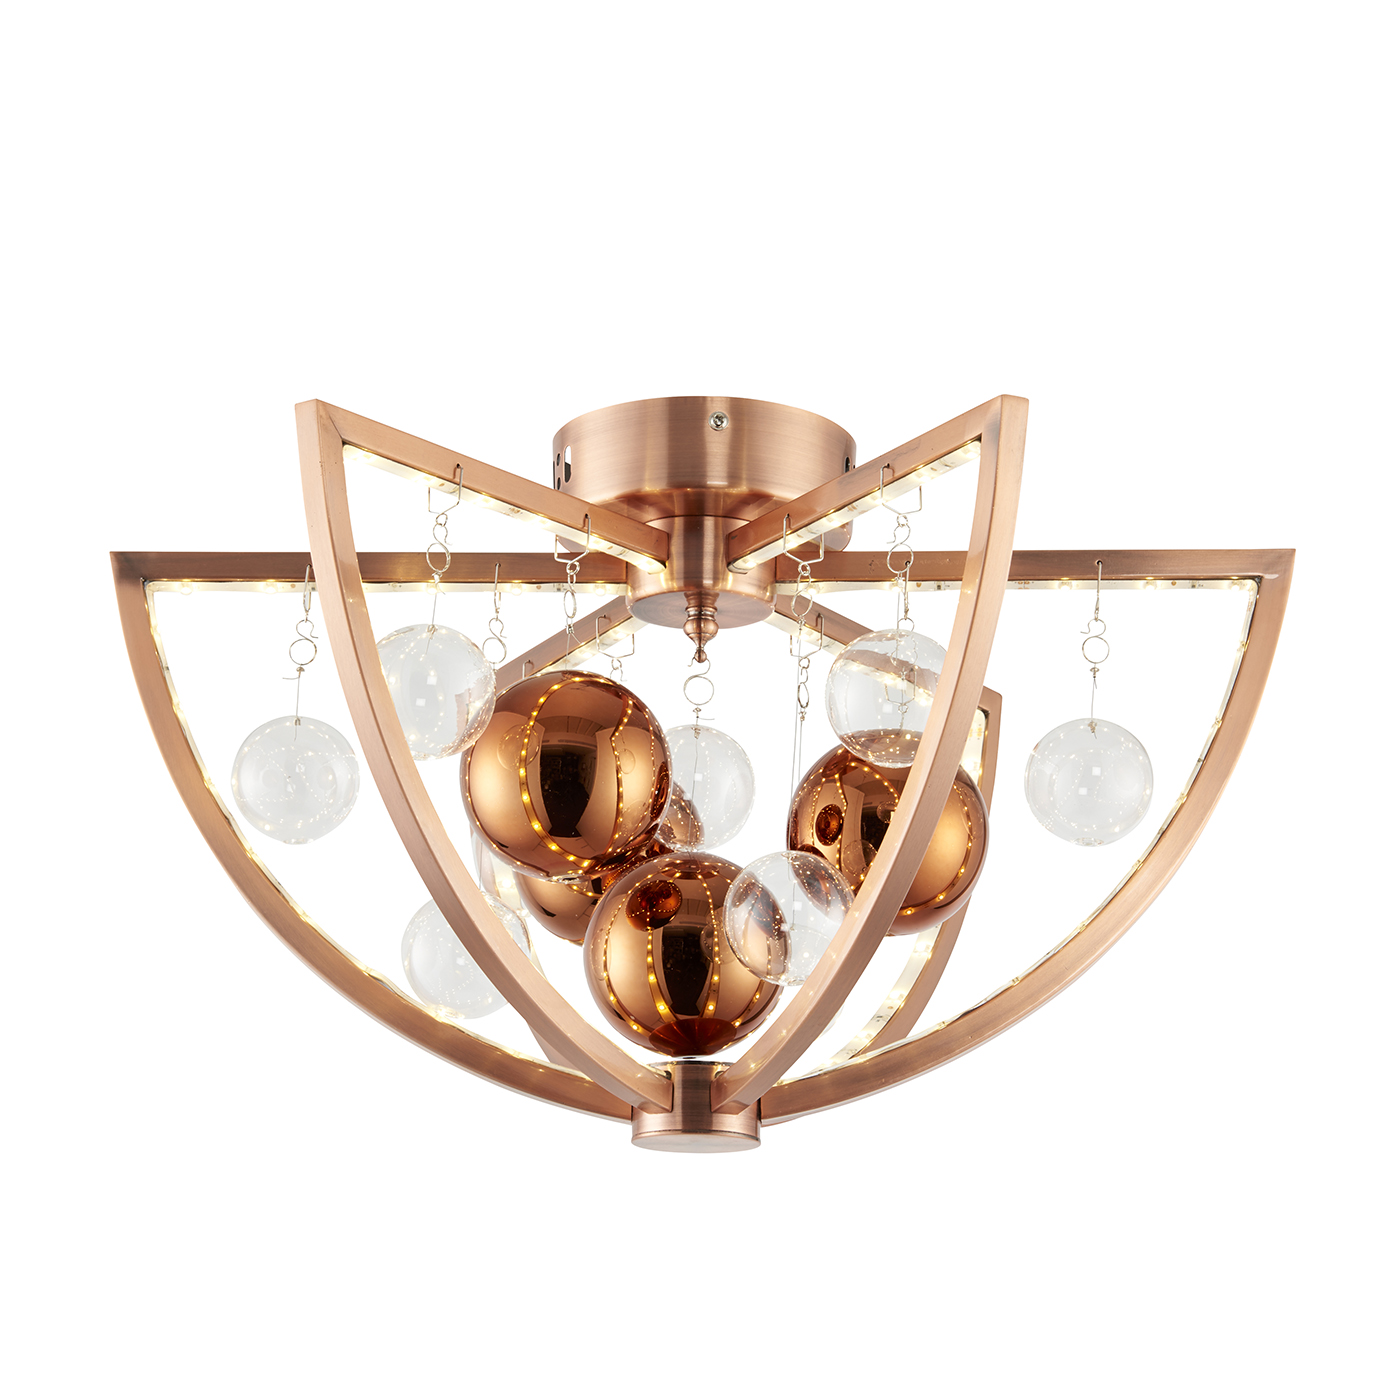 Endon Muni flush ceiling light 7.5W Copper plate with clear & copper balls